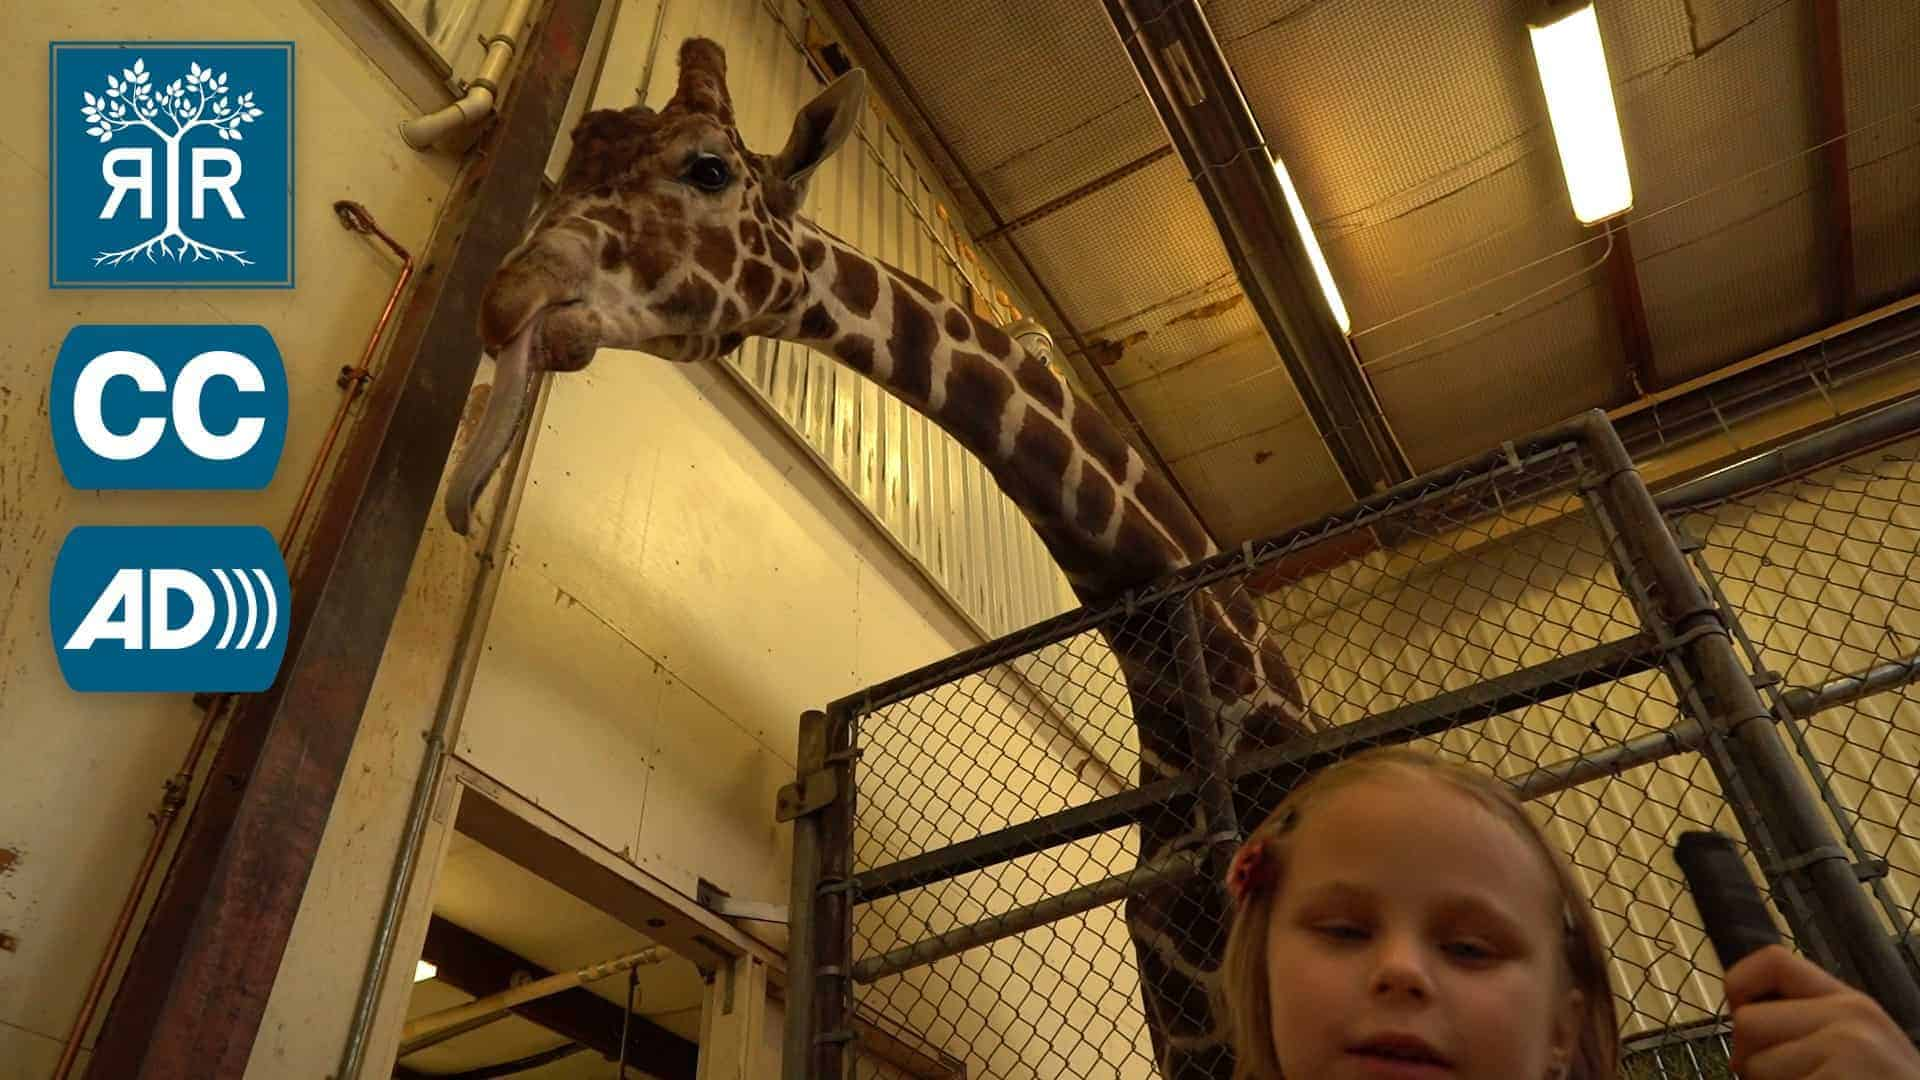 Lyla stands with her cane in front of a giraffe in the giraffe barn